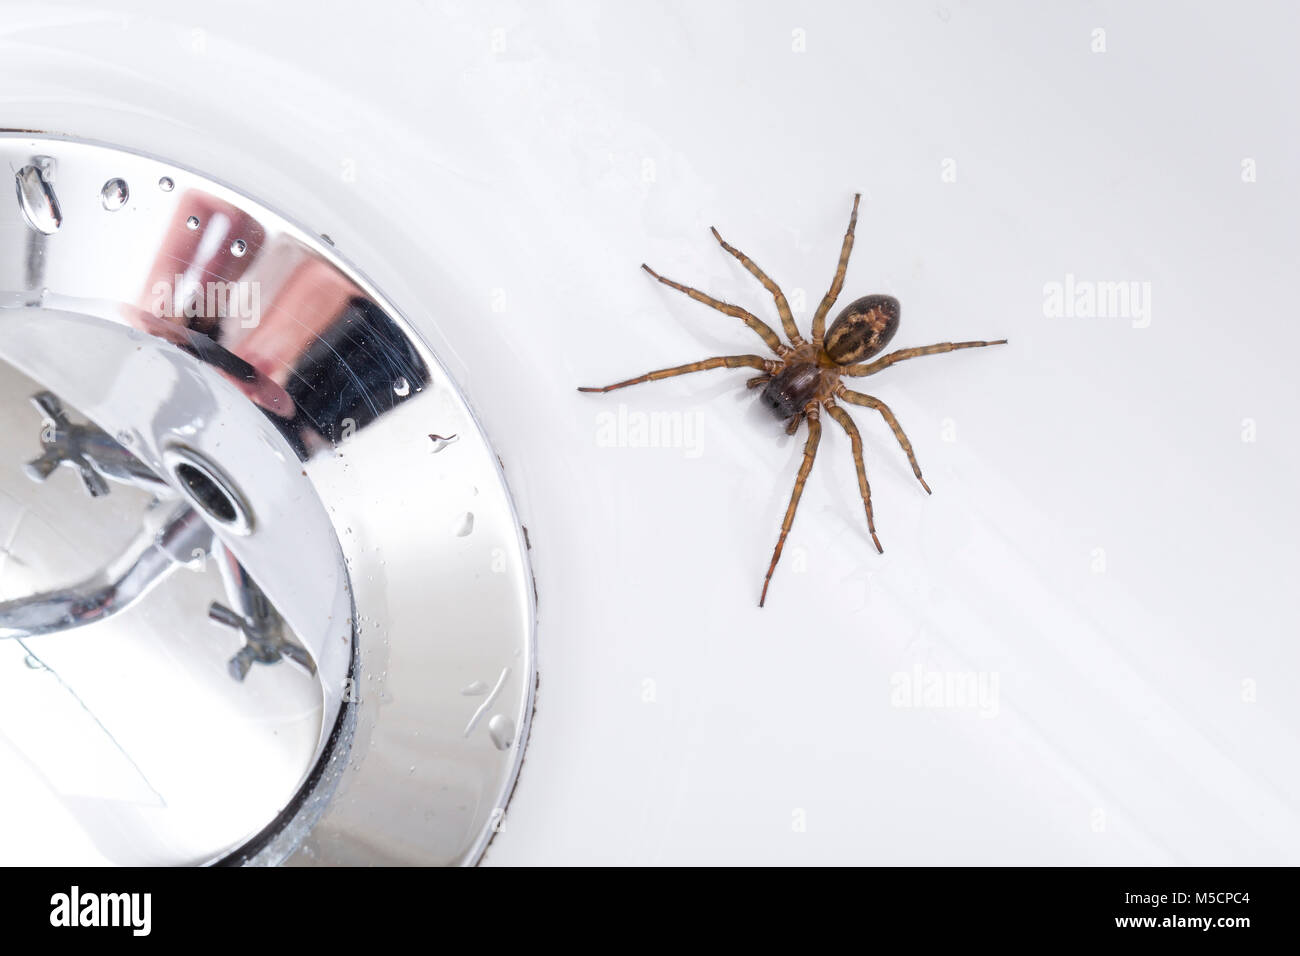 Lace-web Spider, Amaurobius similis, a spider associated with human dwellings, having fallen into a wash basin. - Stock Image